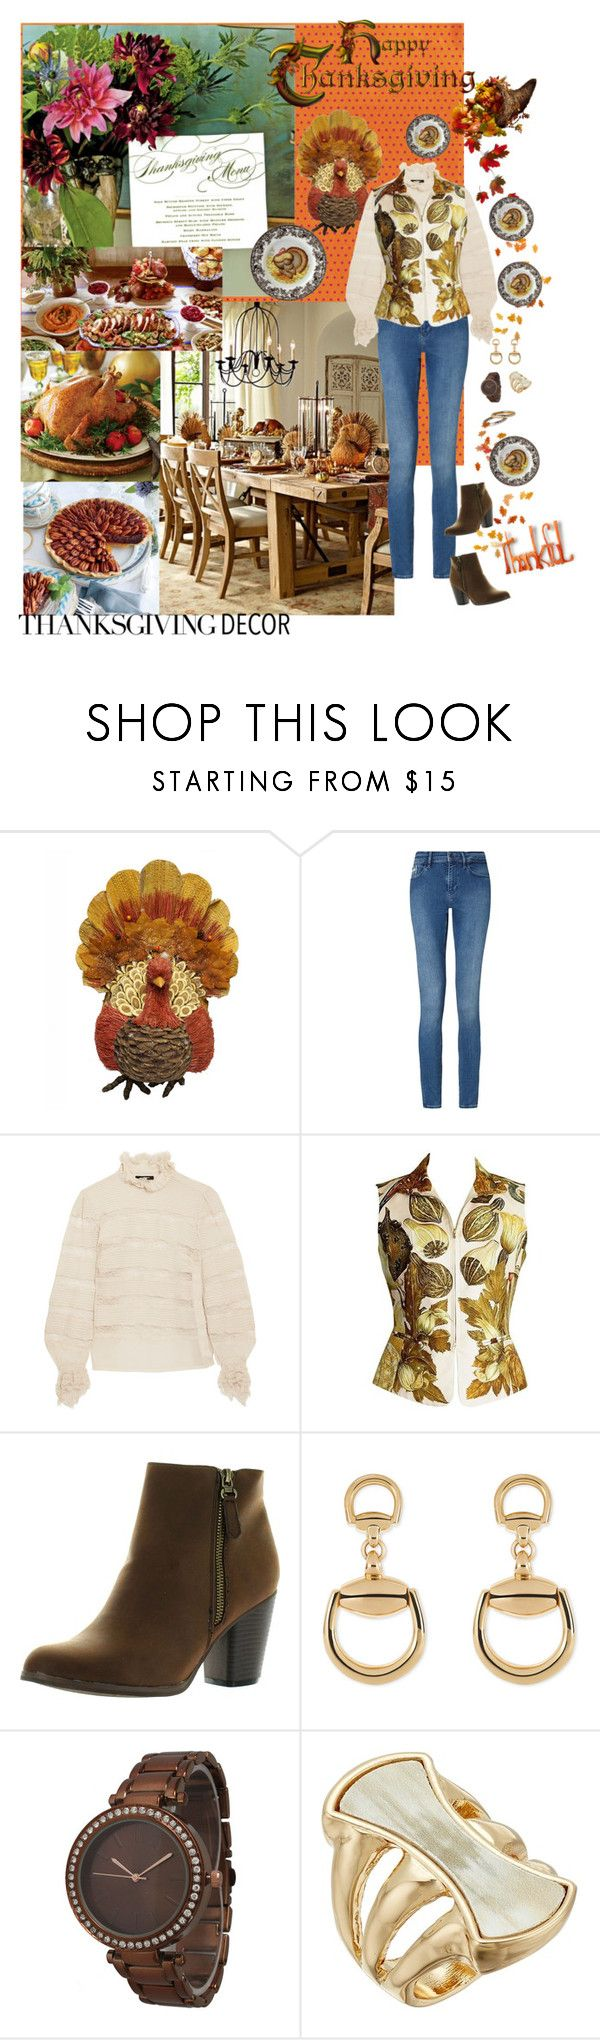 """Happy Thanksgiving 🦃"" by deborah-518 ❤ liked on Polyvore featuring Calvin Klein, Isabel Marant, Hermès, Reneeze, Gucci, Olivia Pratt and Robert Lee Morris"